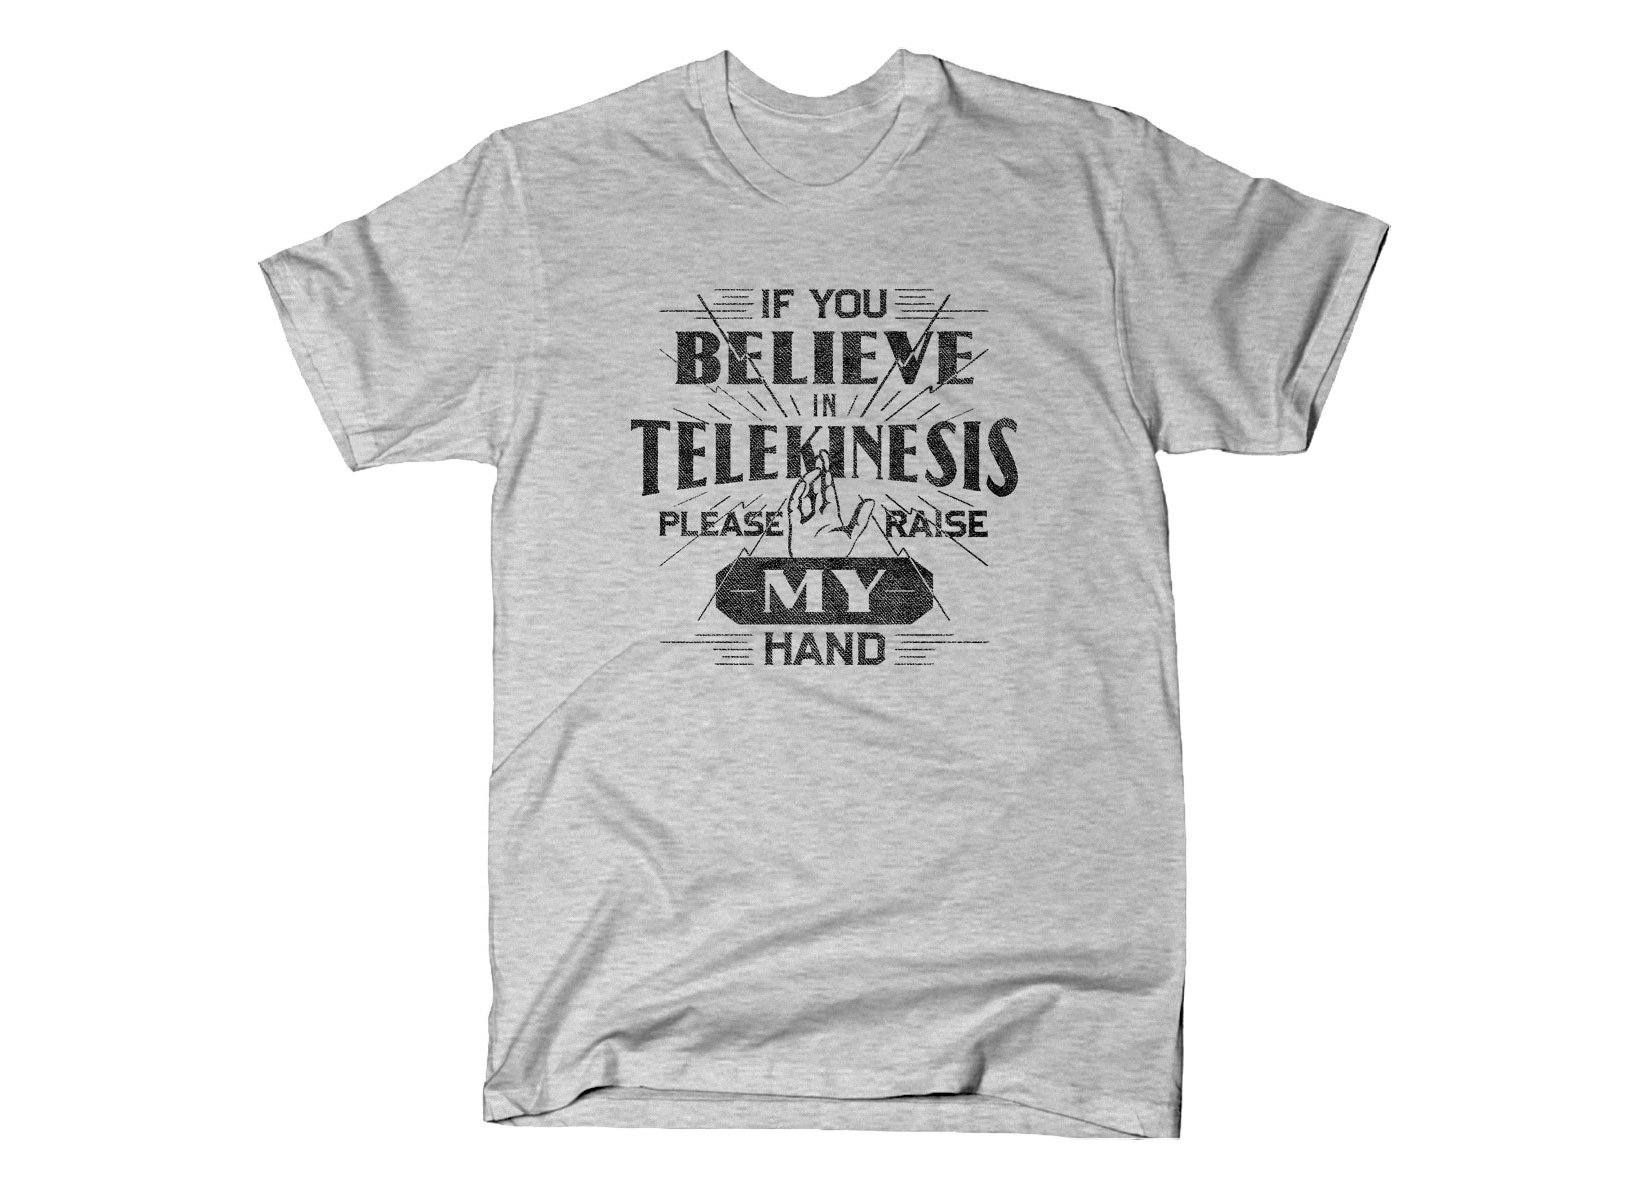 If You Believe In Telekinesis Please Raise My Hand on Mens T-Shirt